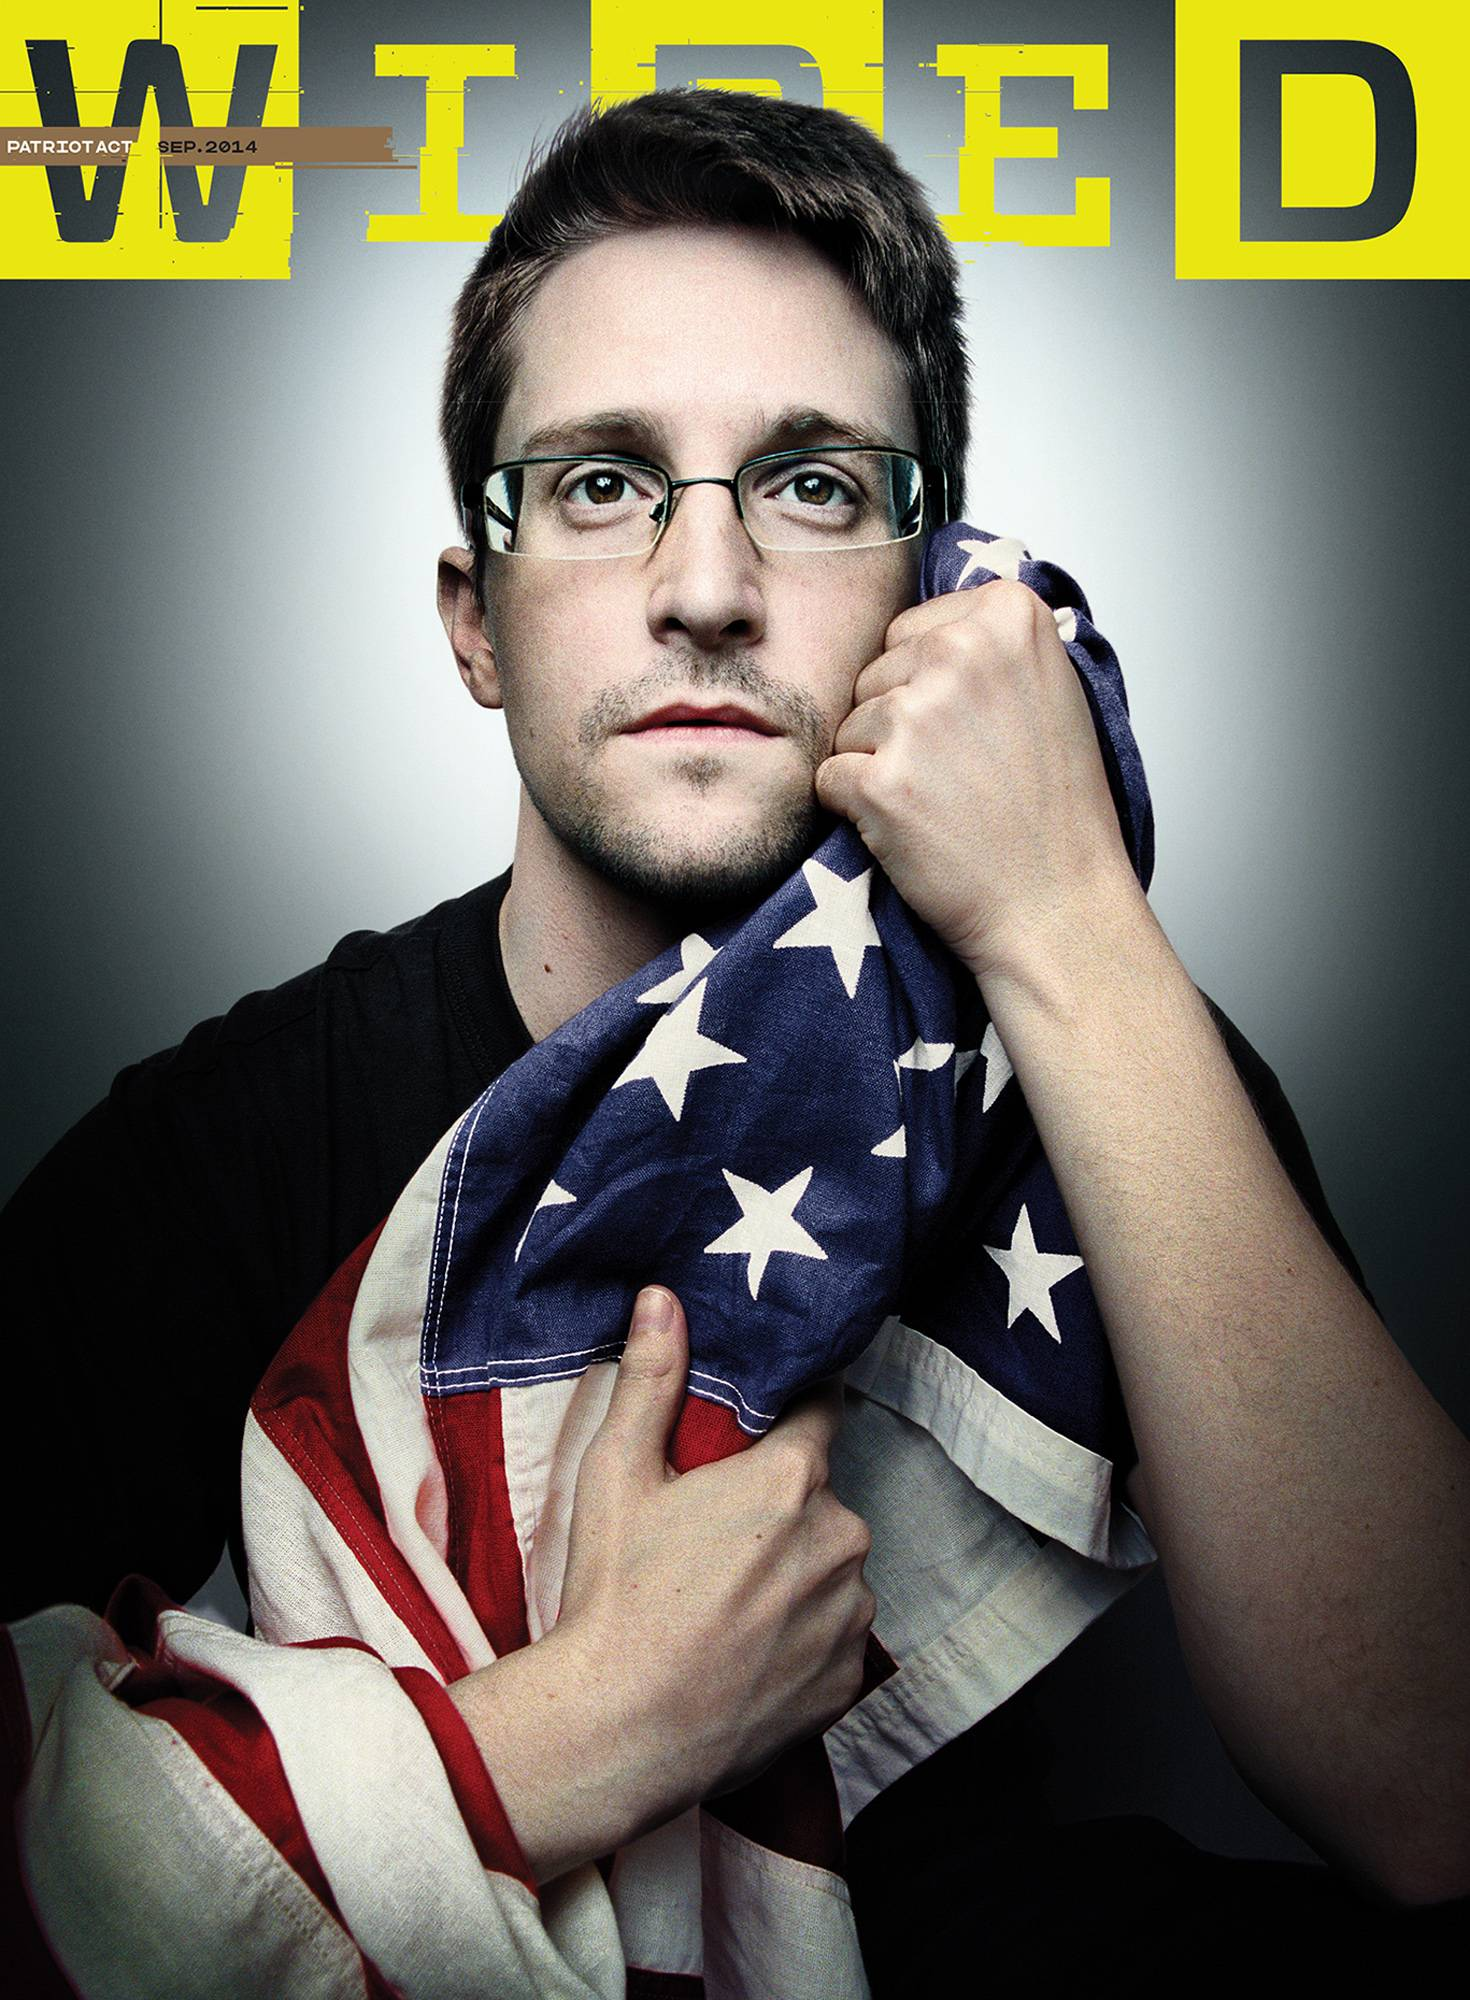 This image provided by Platon/Wired shows the cover of the September 2014 issue of Wired magazine, featuring former National Security Agency contractor Edward Snowden. Snowden gave an exclusive interview with Wired, in the issue scheduled to hit newsstands on Aug. 26.